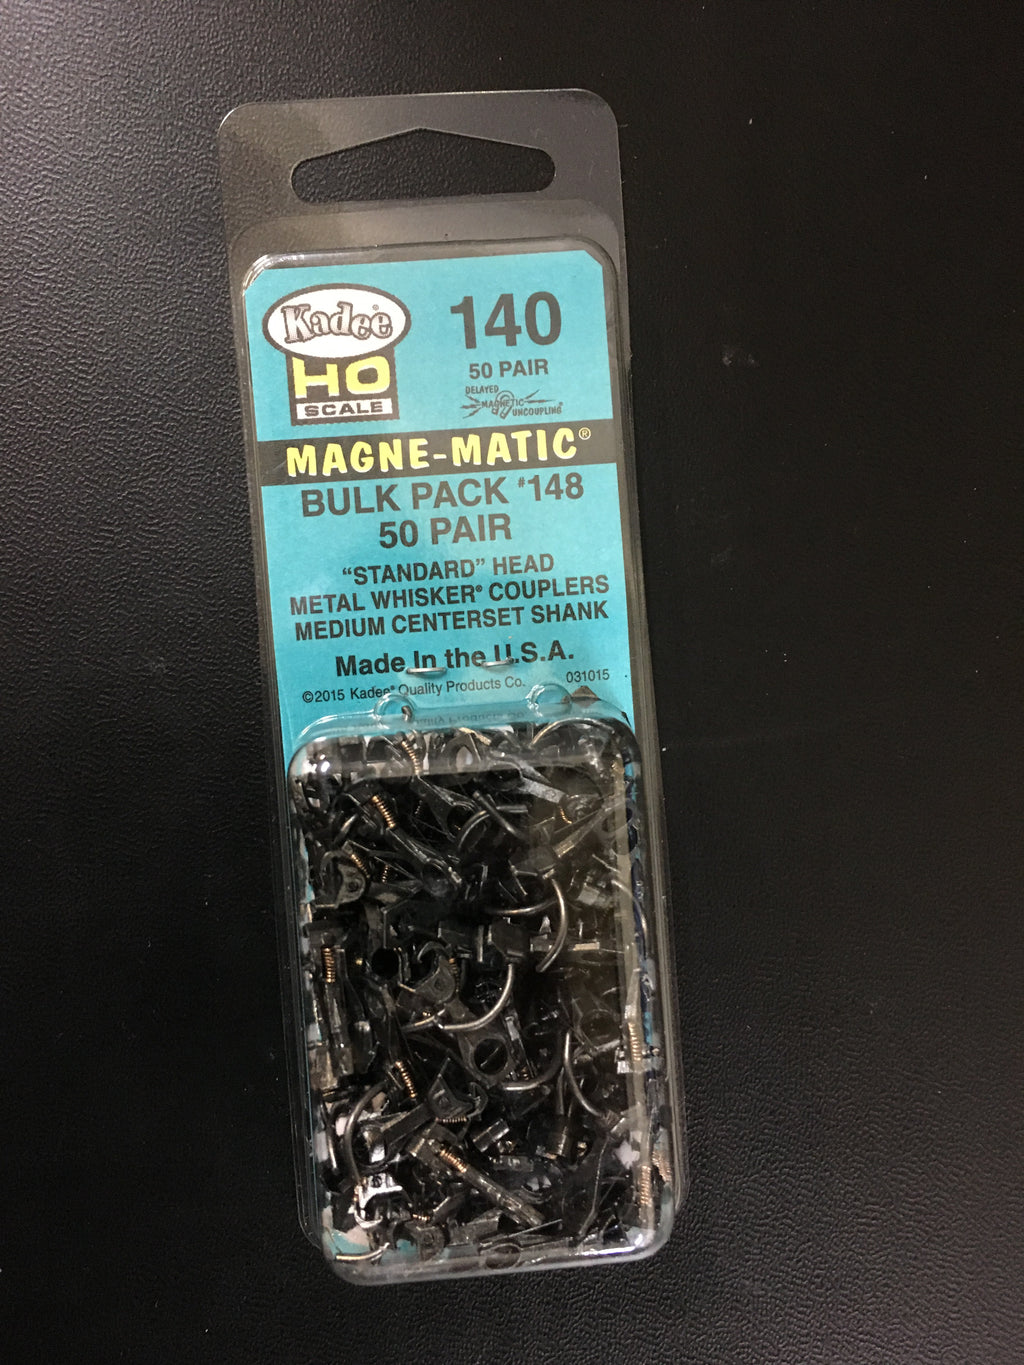 # 140 bulk Pk 50 pair of No148 whisker couplers (no box's)